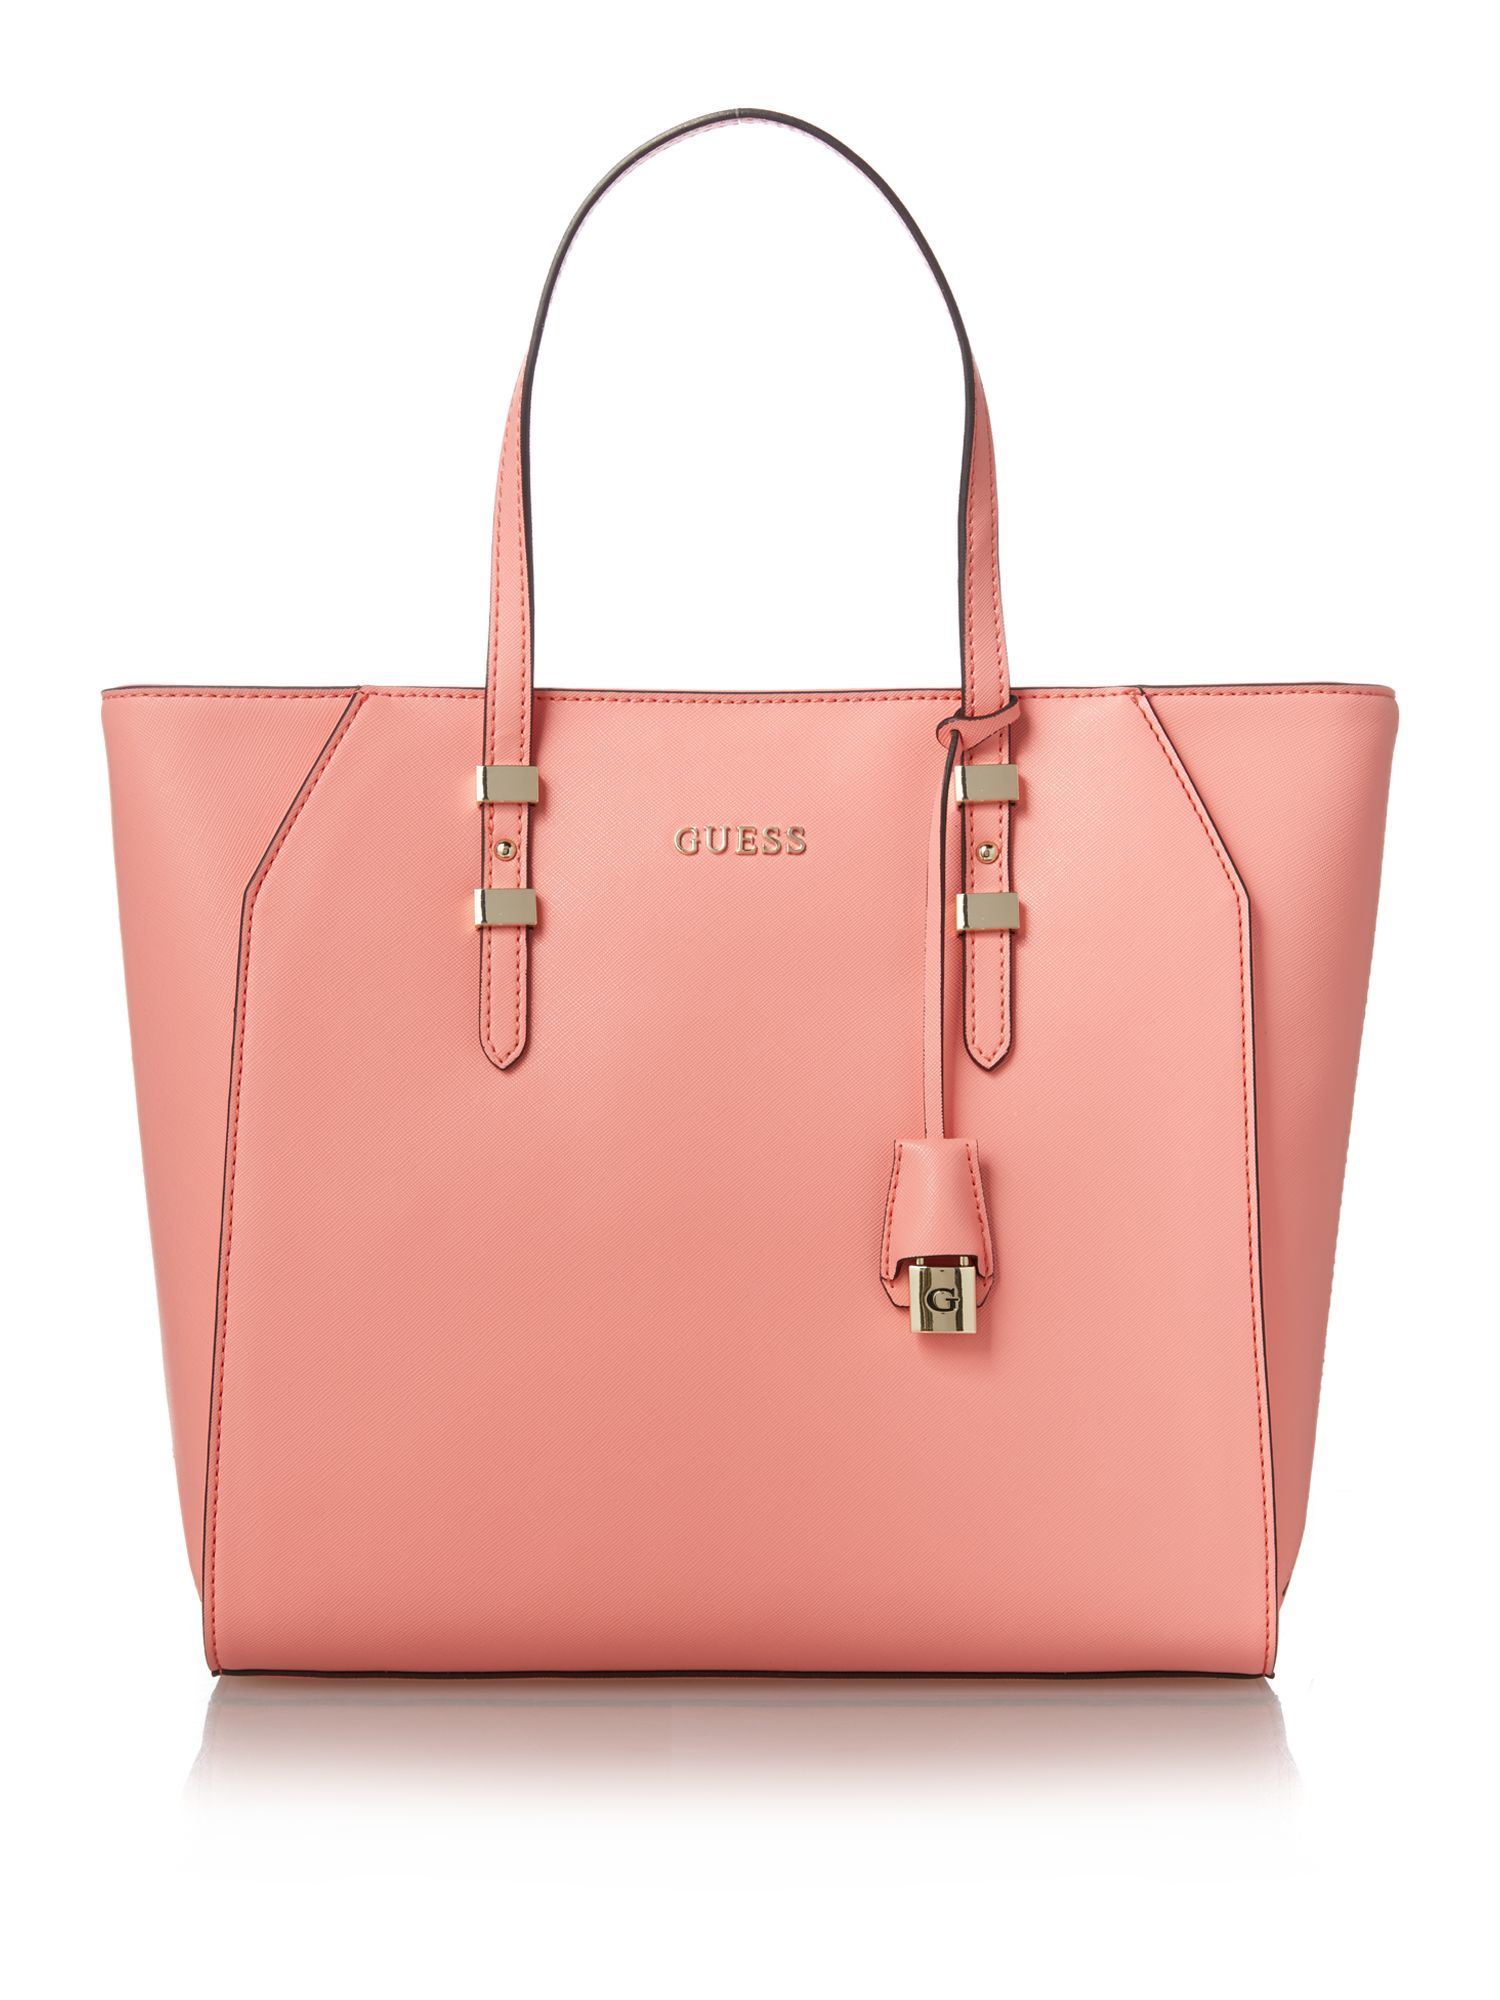 Guess Gigi Pink Tote Shoulder Bag in Pink | Lyst